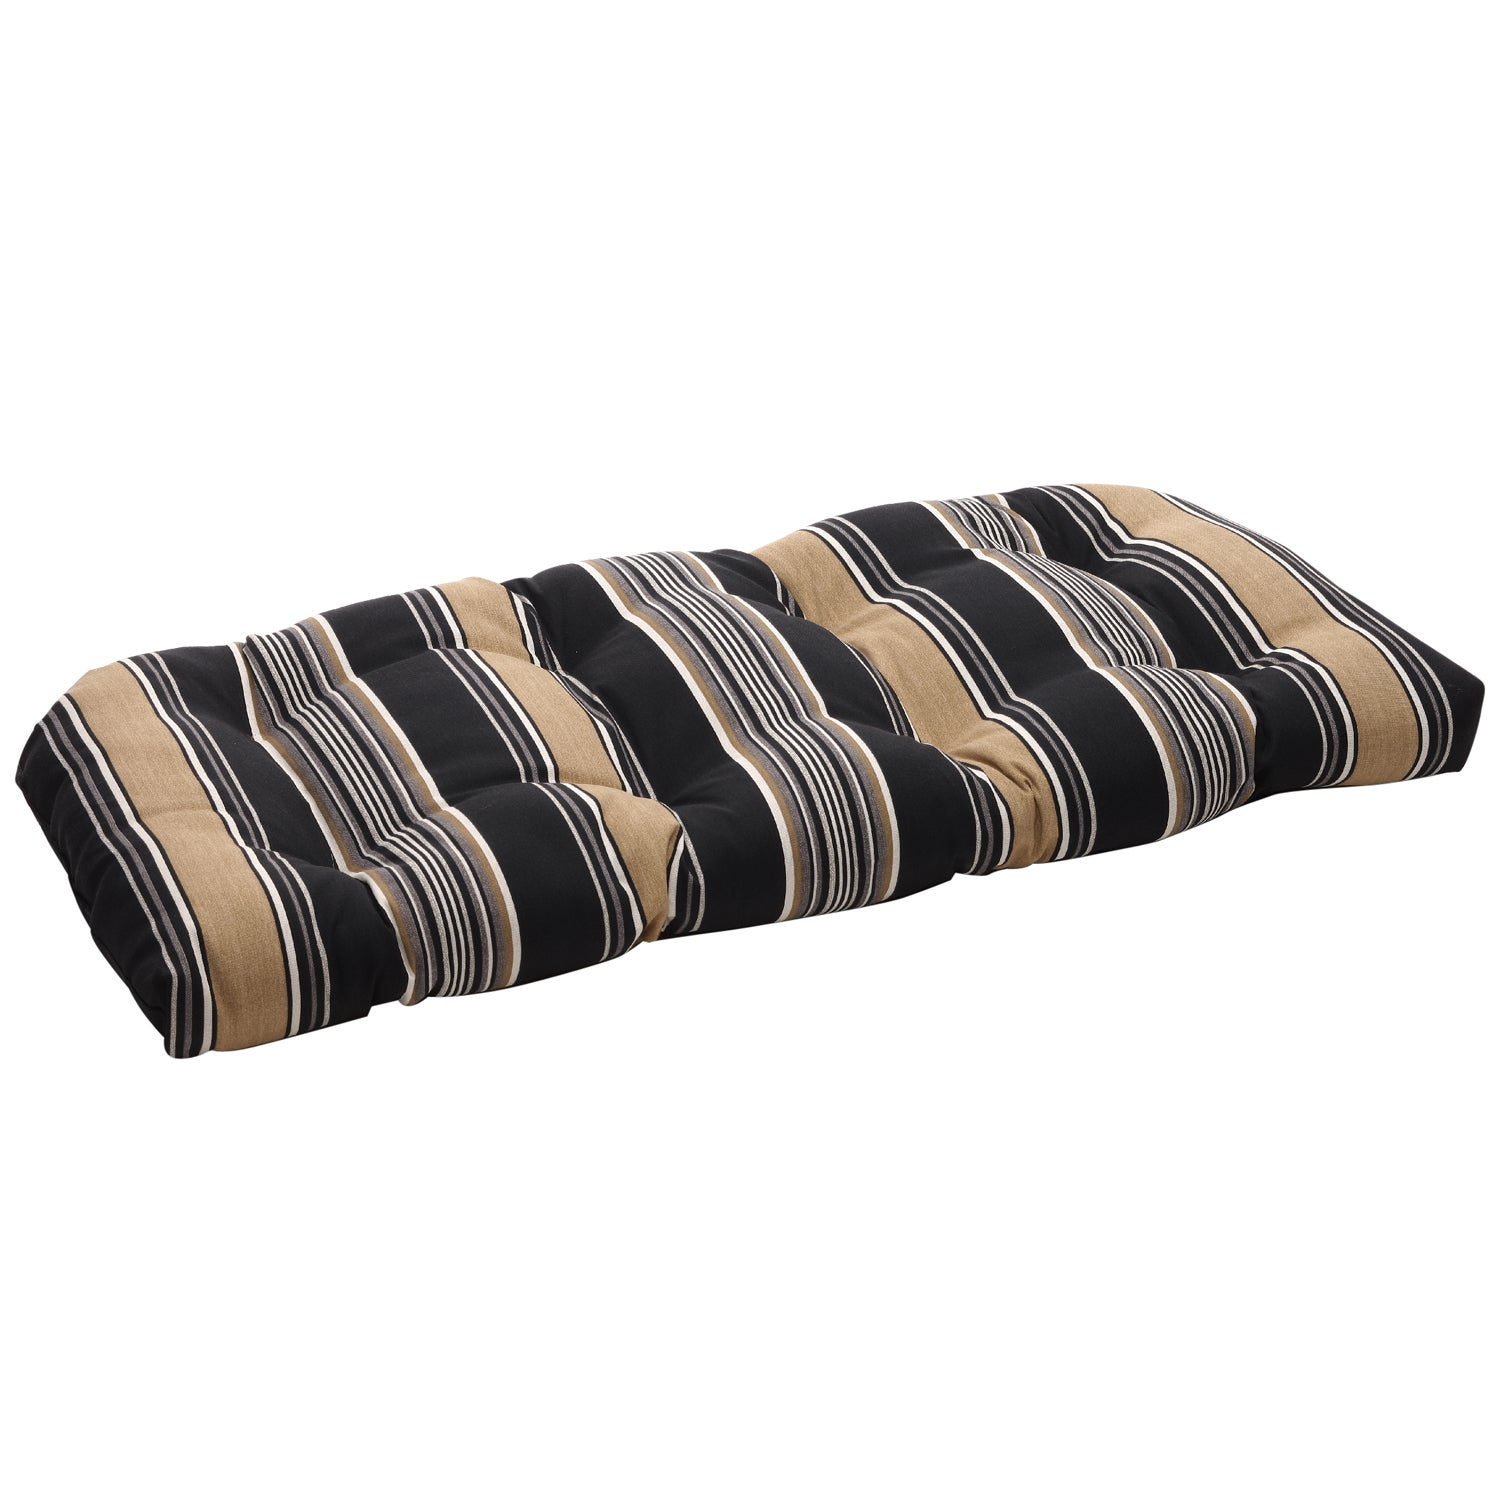 Pillow Perfect Black/ Tan Striped Tufted Outdoor Wicker Loveseat Cushion